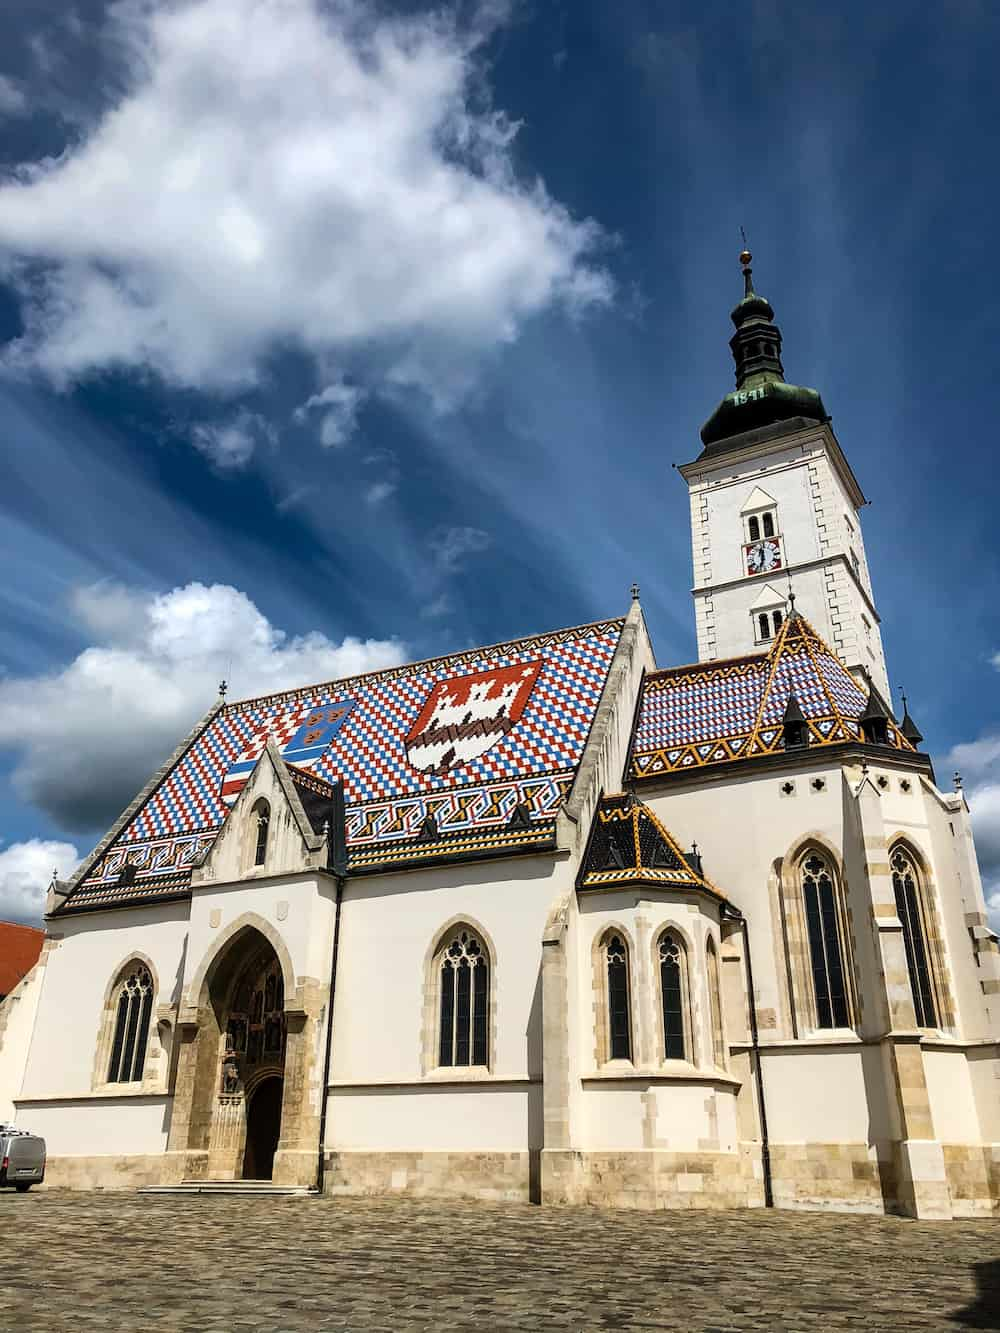 Image of Zagreb stone church